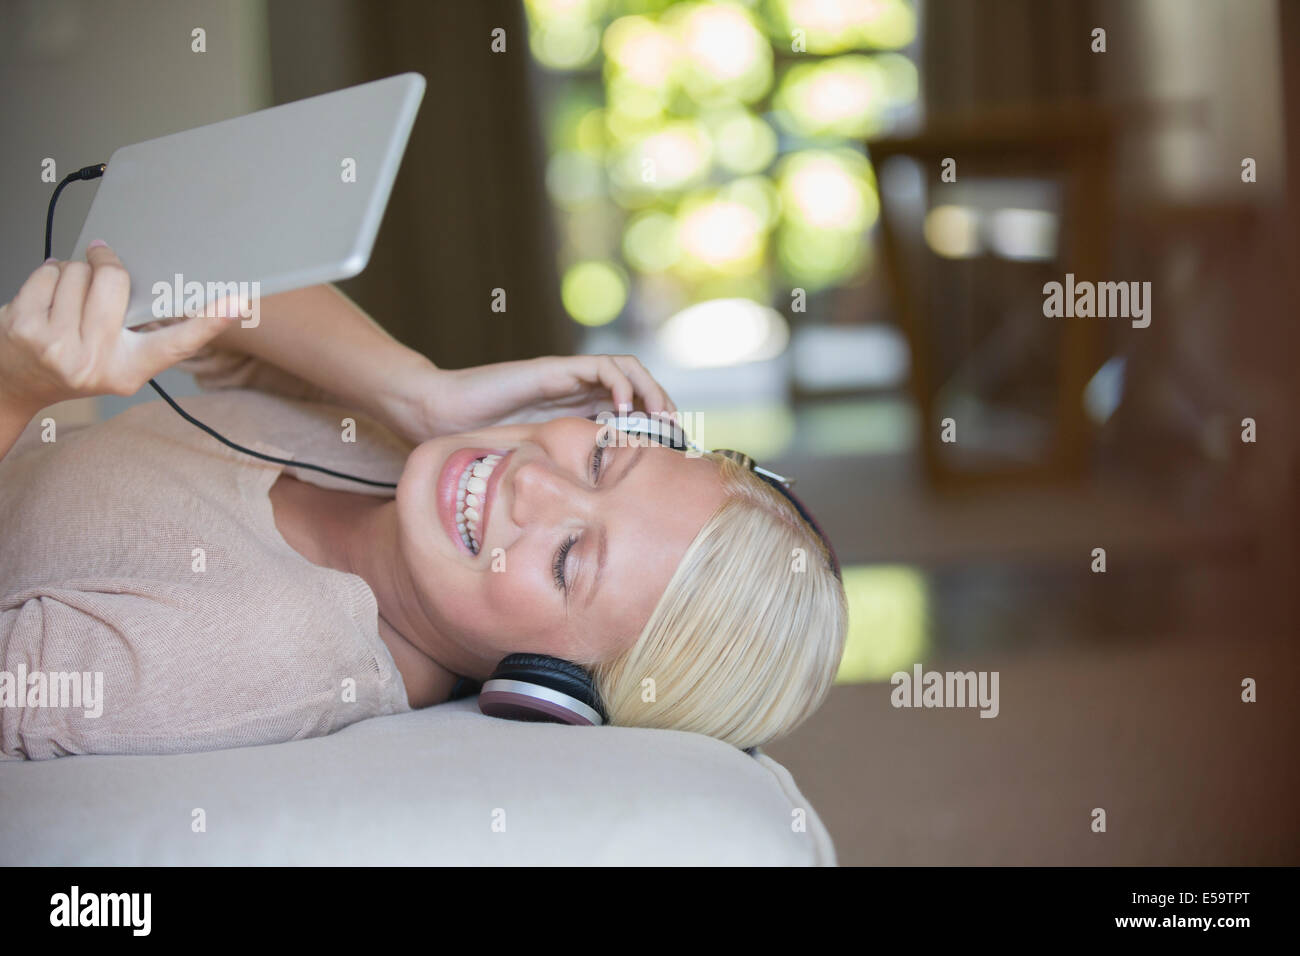 Woman using digital tablet and headphones - Stock Image